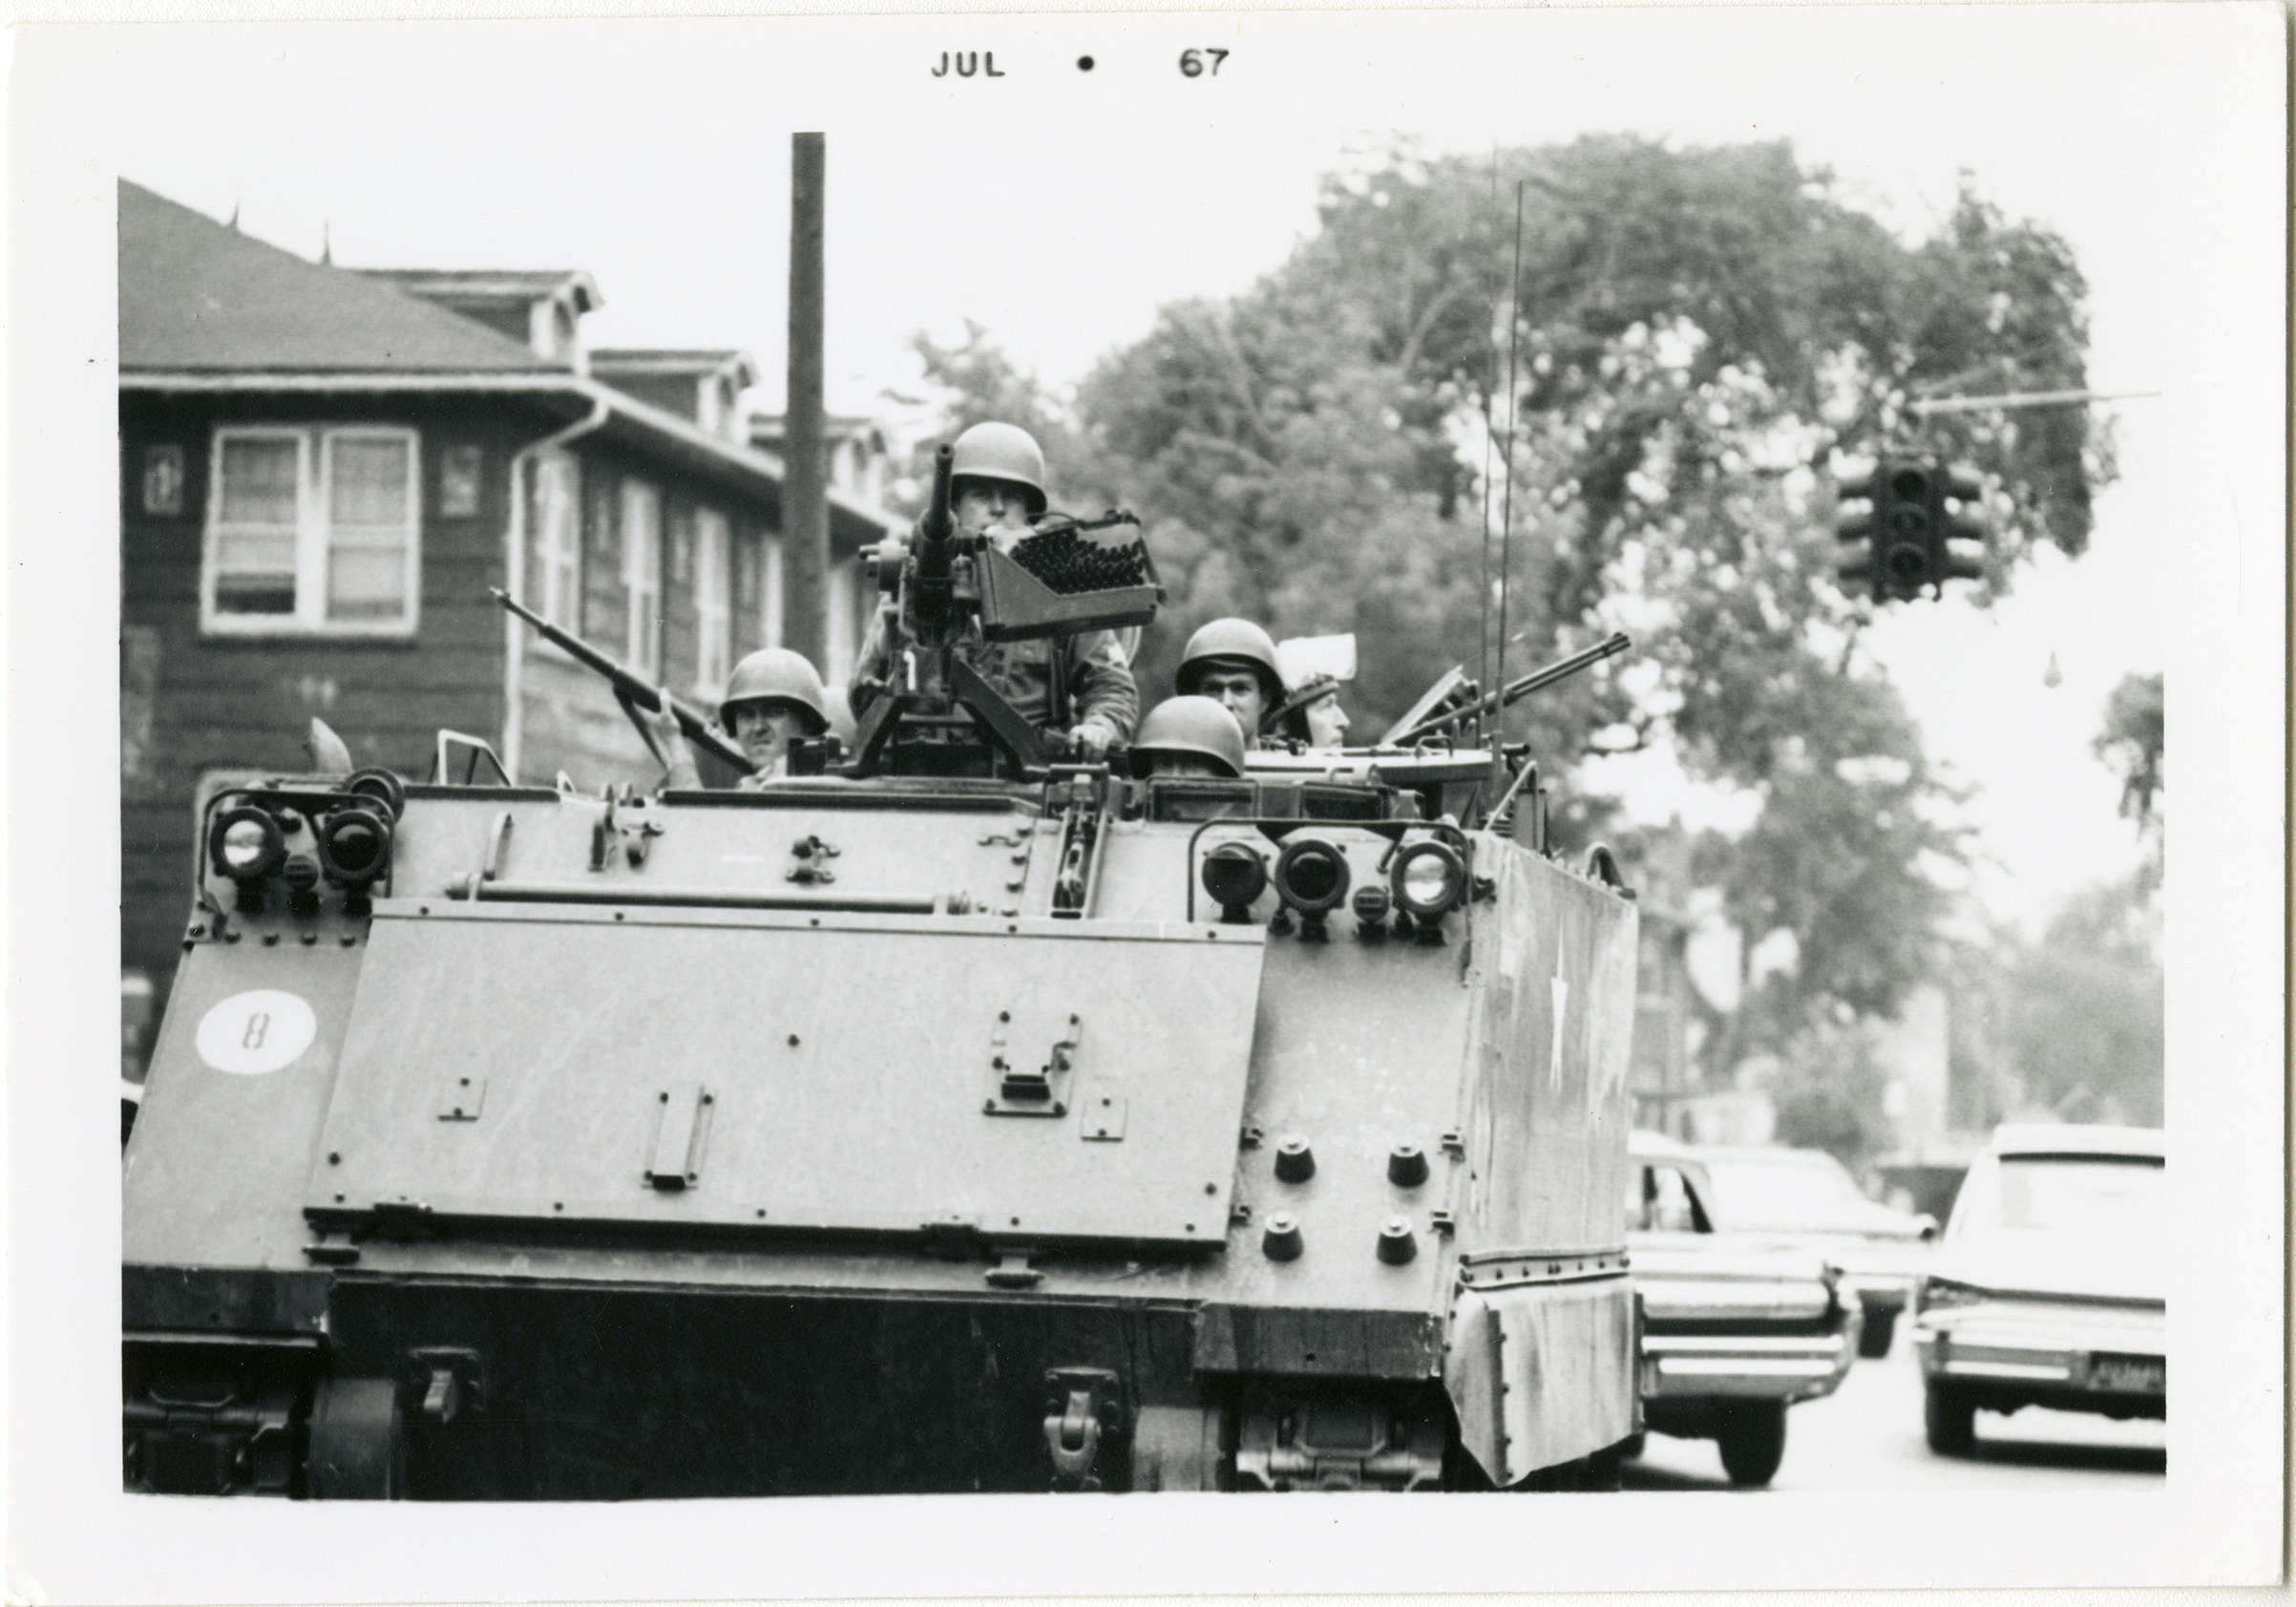 Michigan National Guardsmen patrol the streets of Detroit in an armored personal carrier, also known as a tank.